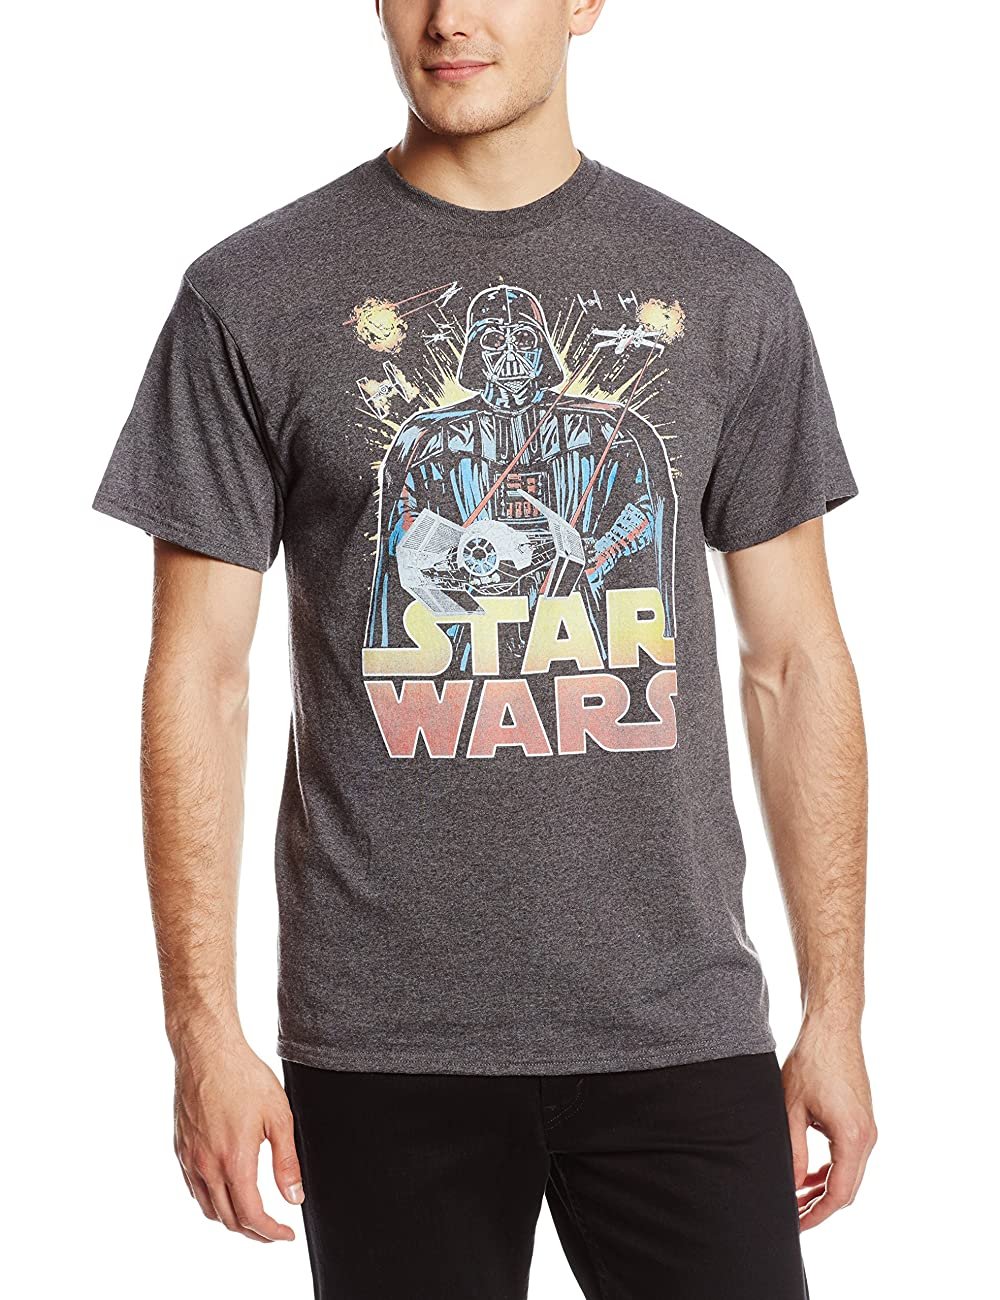 Star Wars Men's Ancient Threat T-Shirt 0